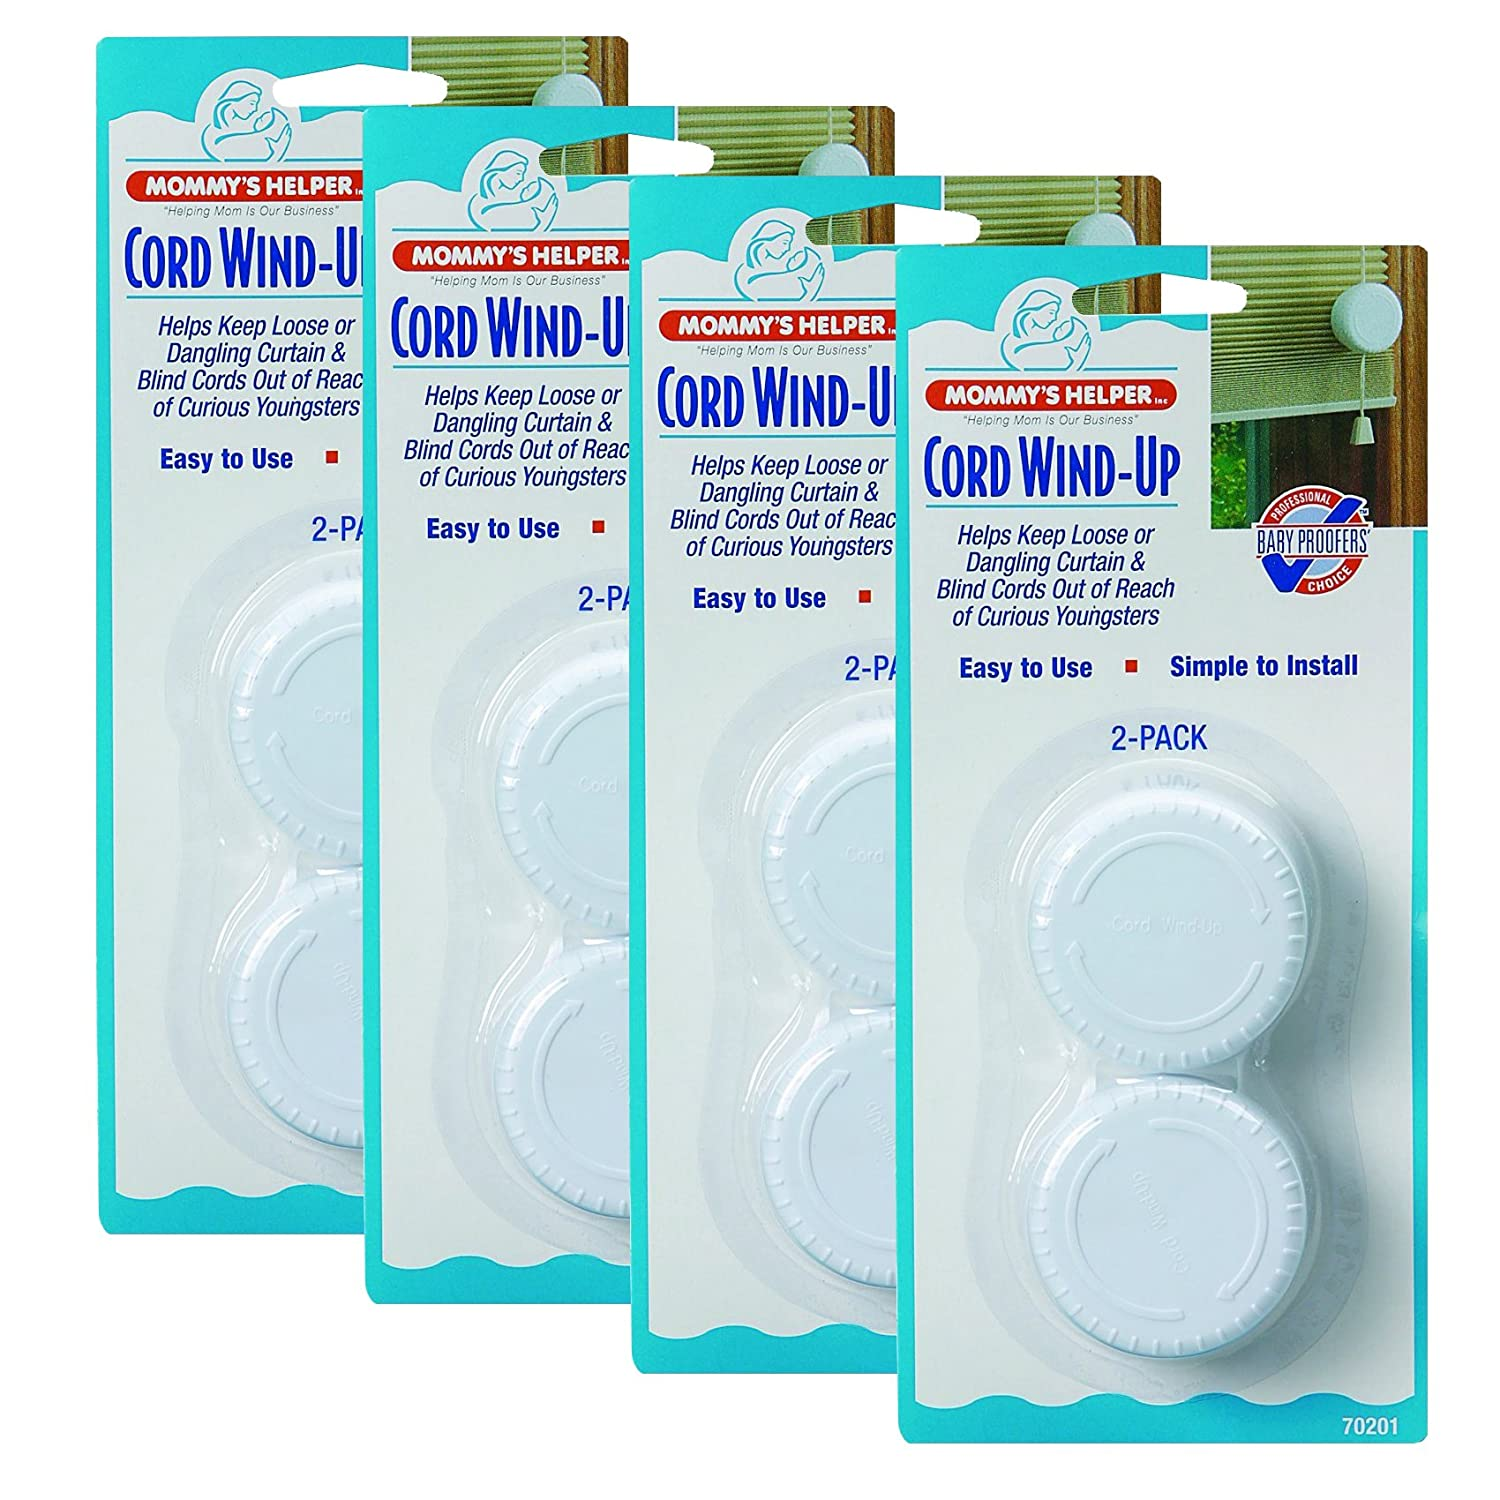 Mommy's Helper Cord Wind-Up - 8 Count